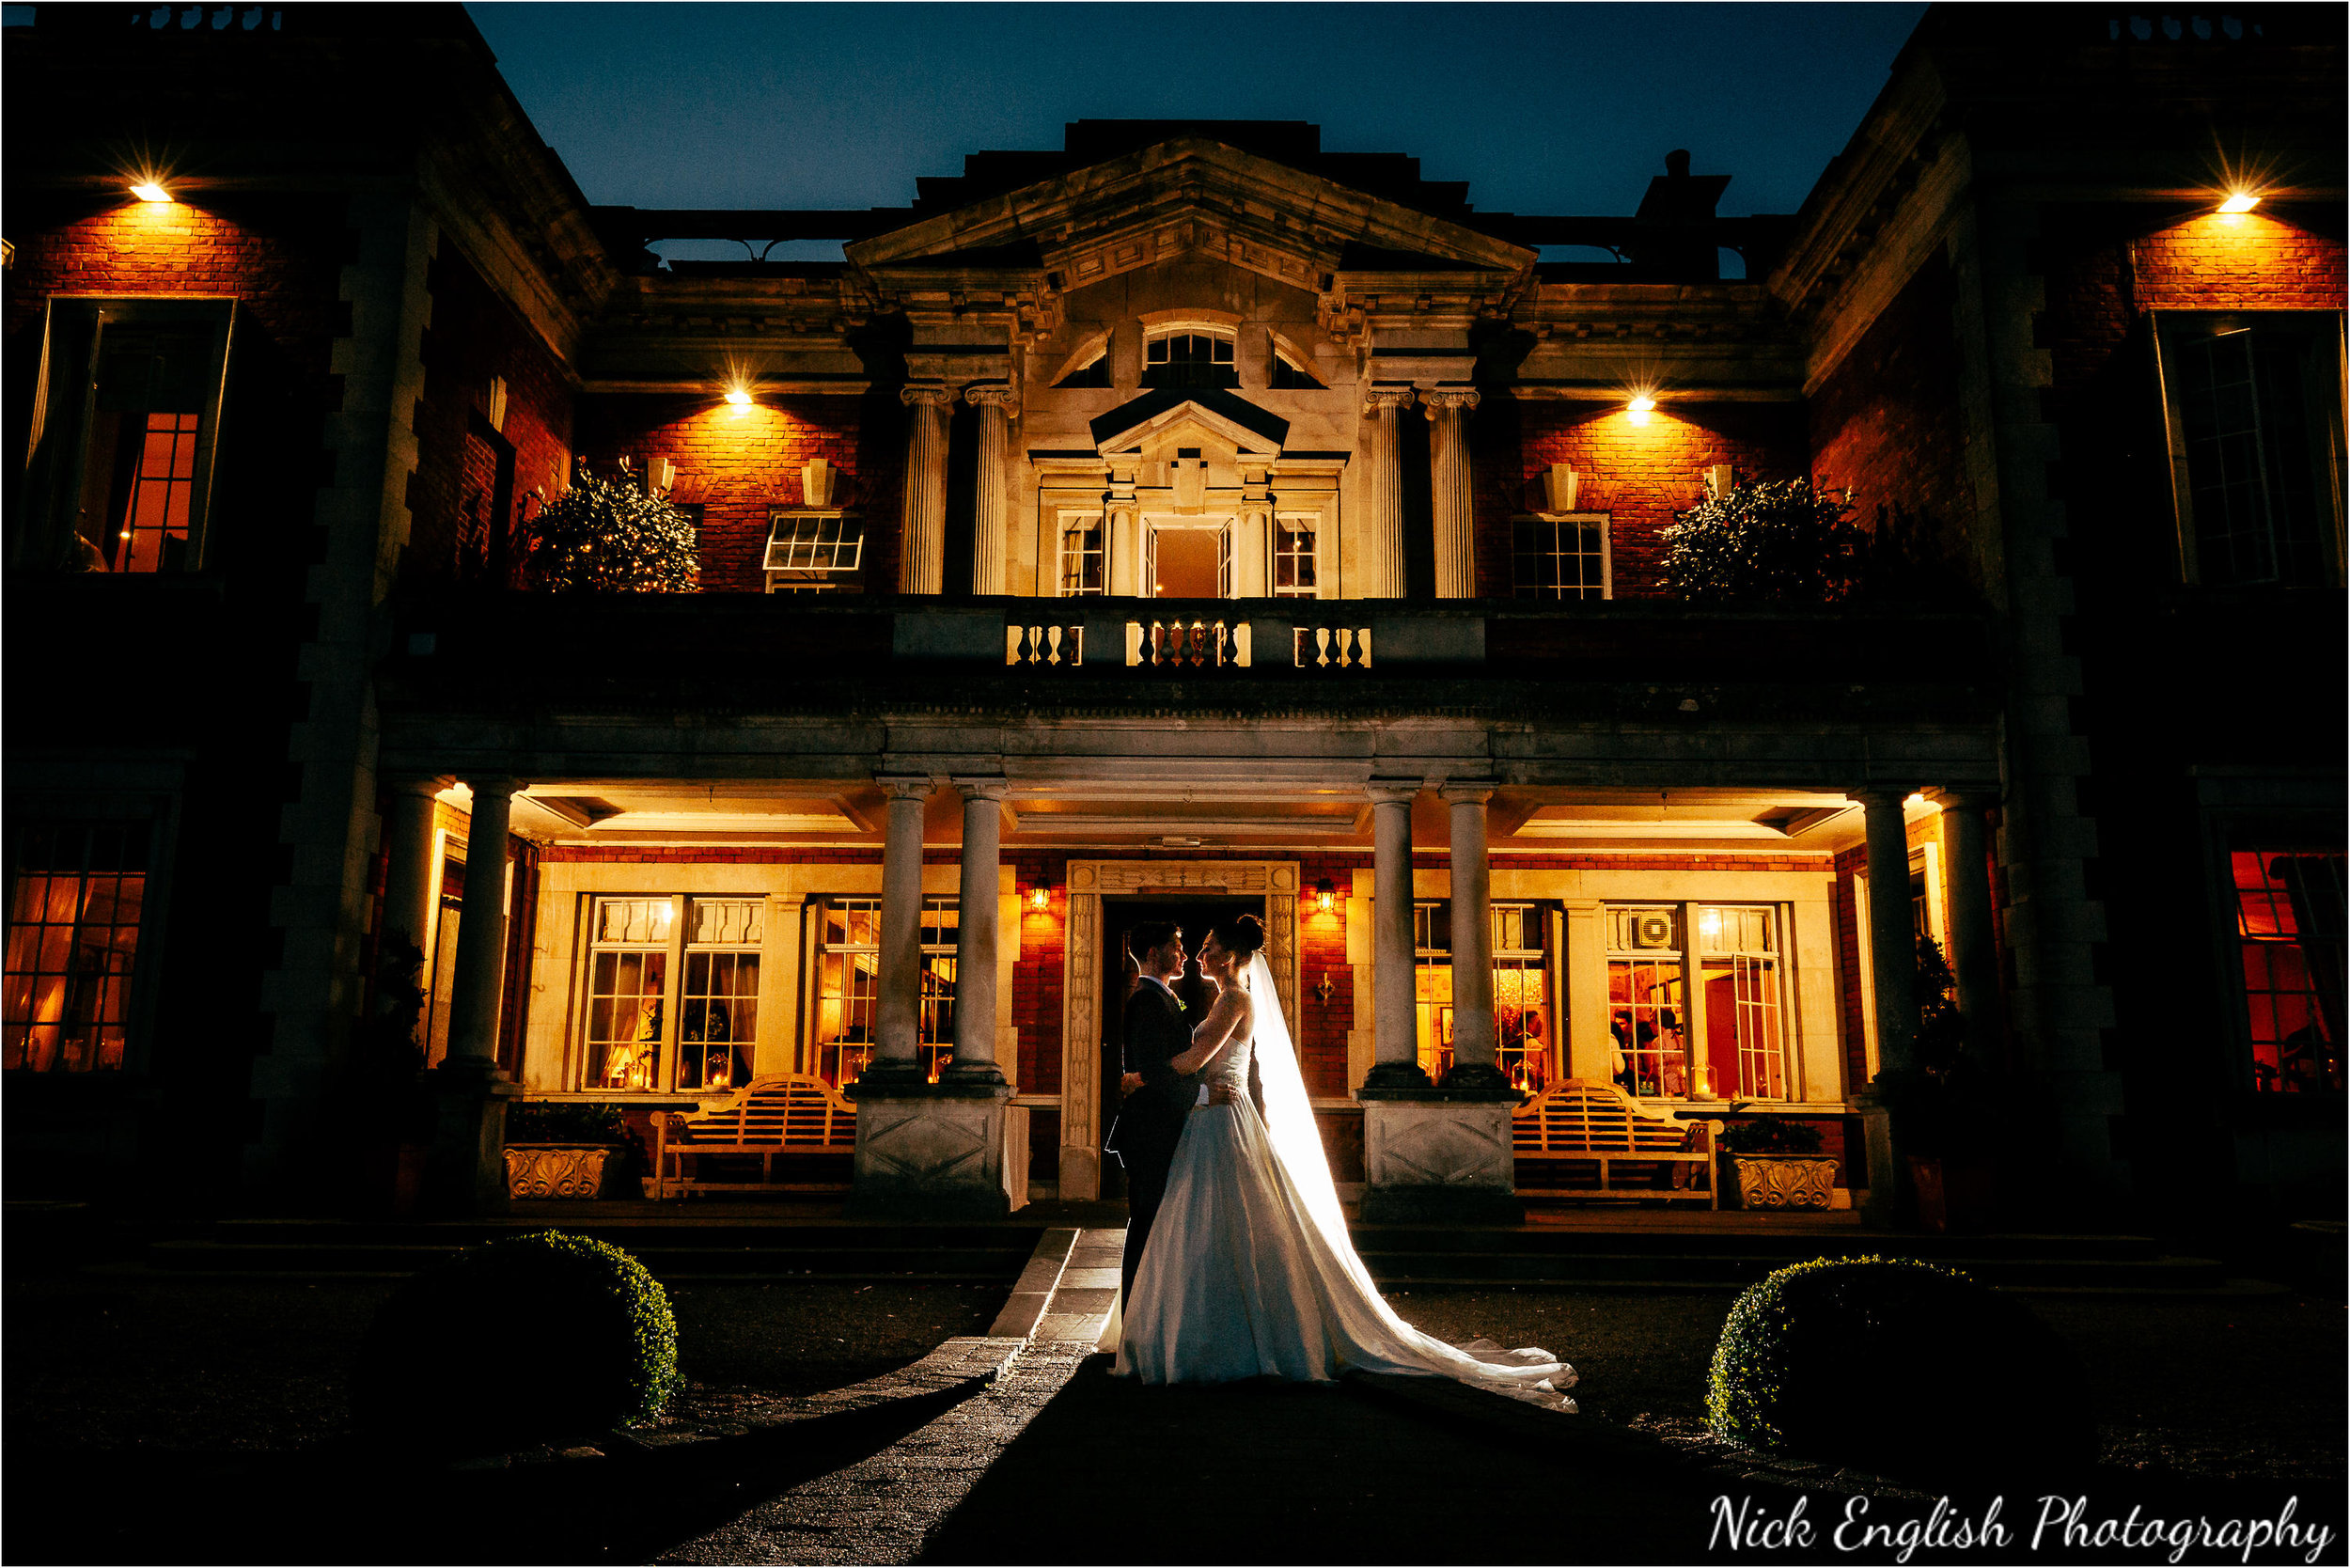 Eaves_Hall_Wedding_Photographs_Nick_English_Photography-220.jpg